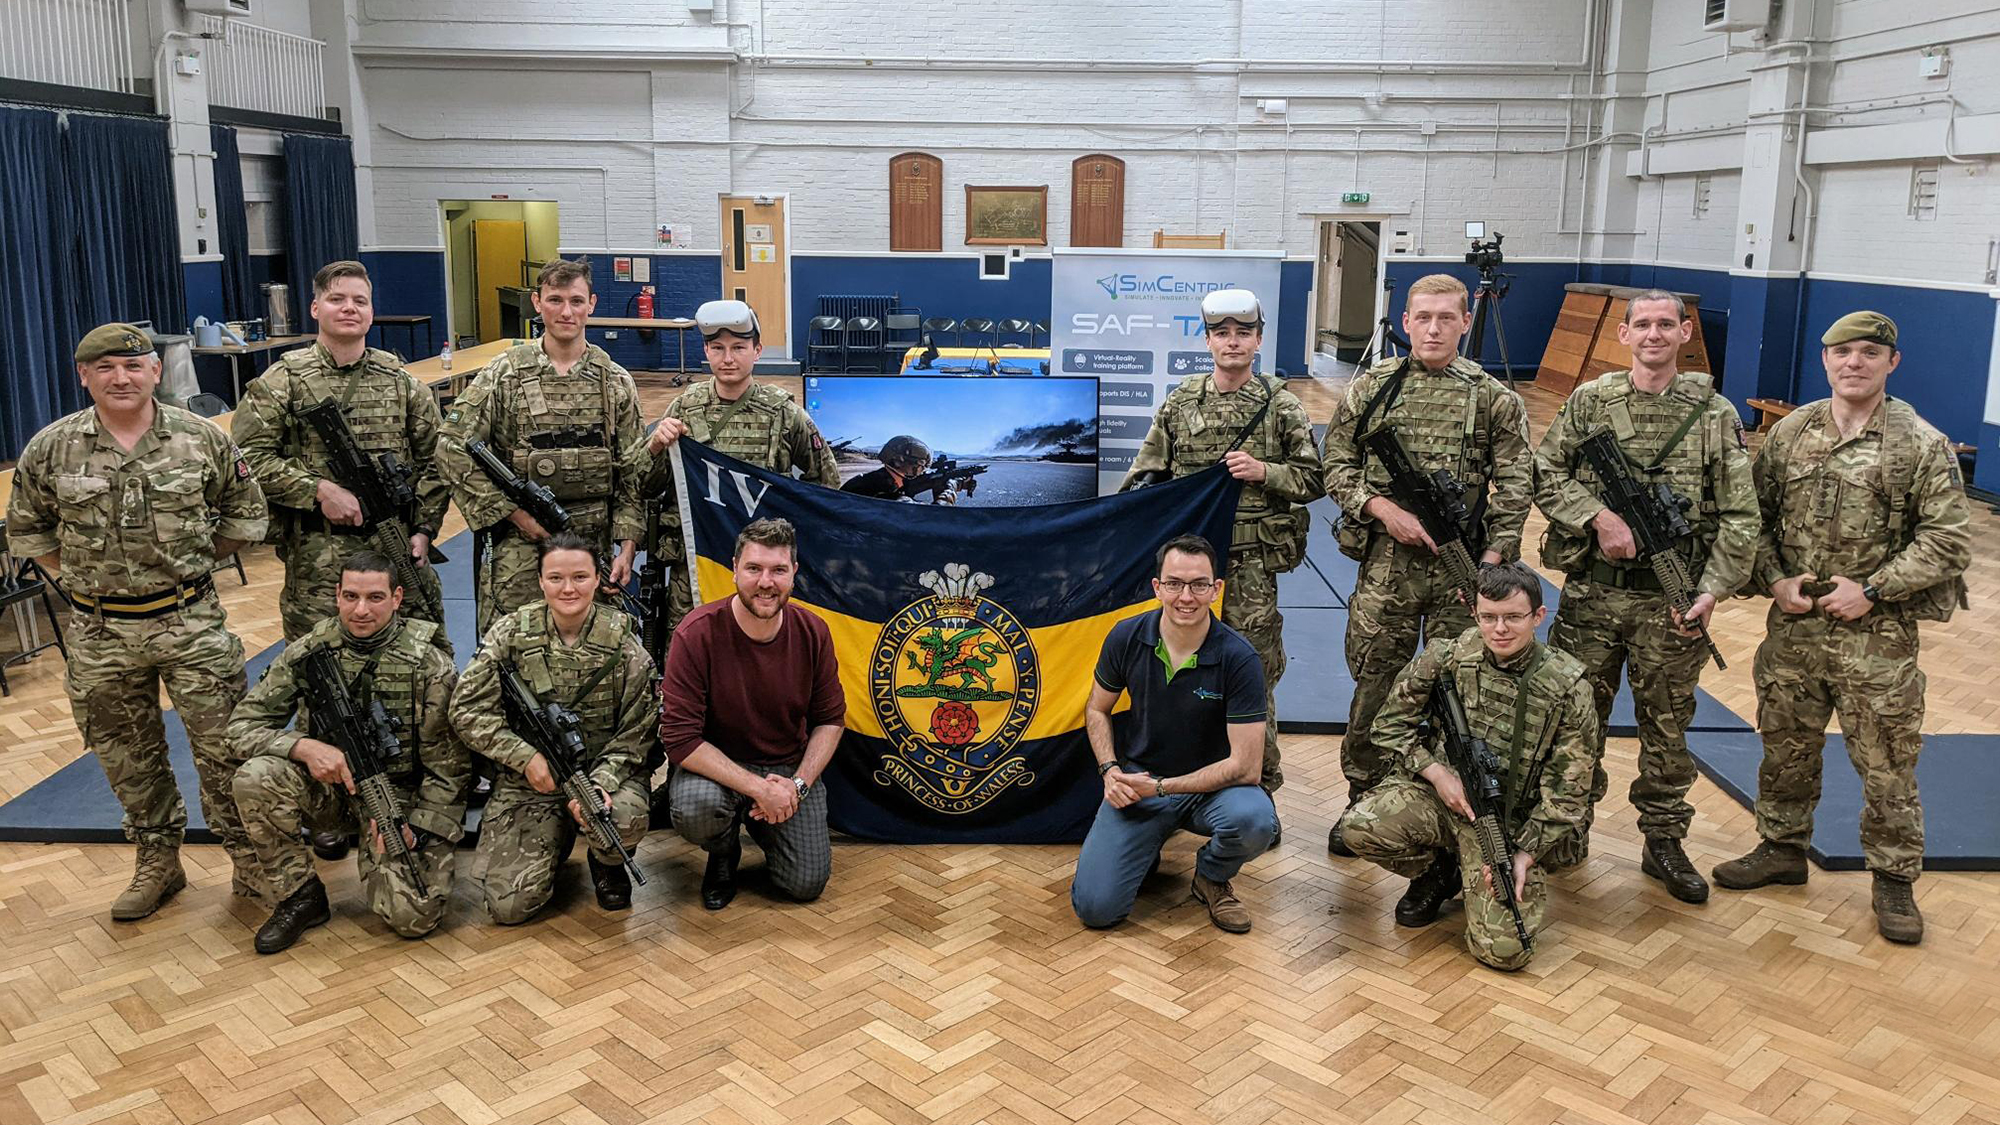 NEWS: SAF-TAC VR TRAINING PROVES A HIT WITH THE BRITISH ARMY